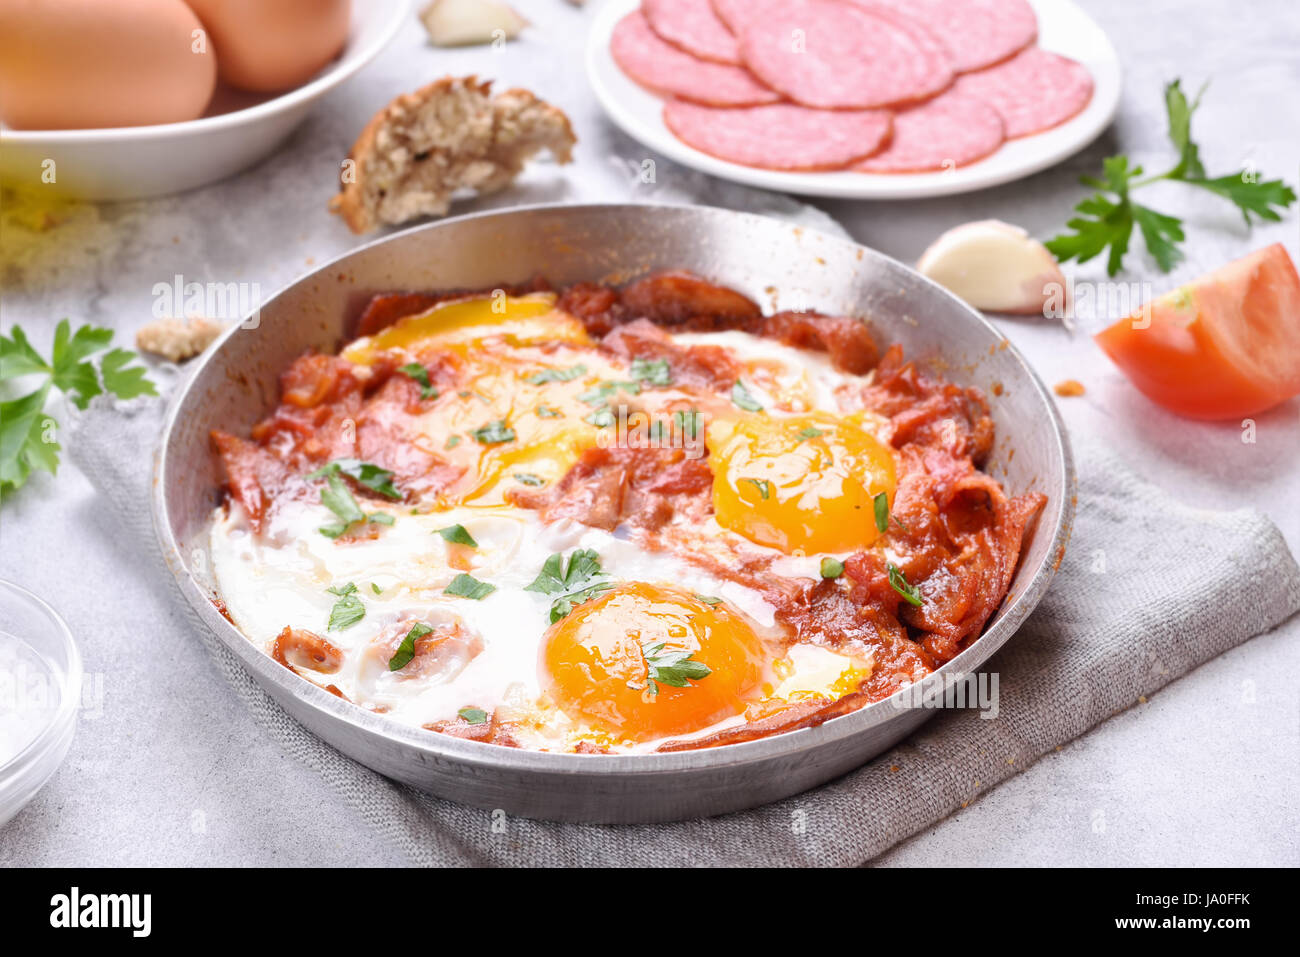 Morning food. Fried eggs with tomatoes and bacon in frying pan - Stock Image